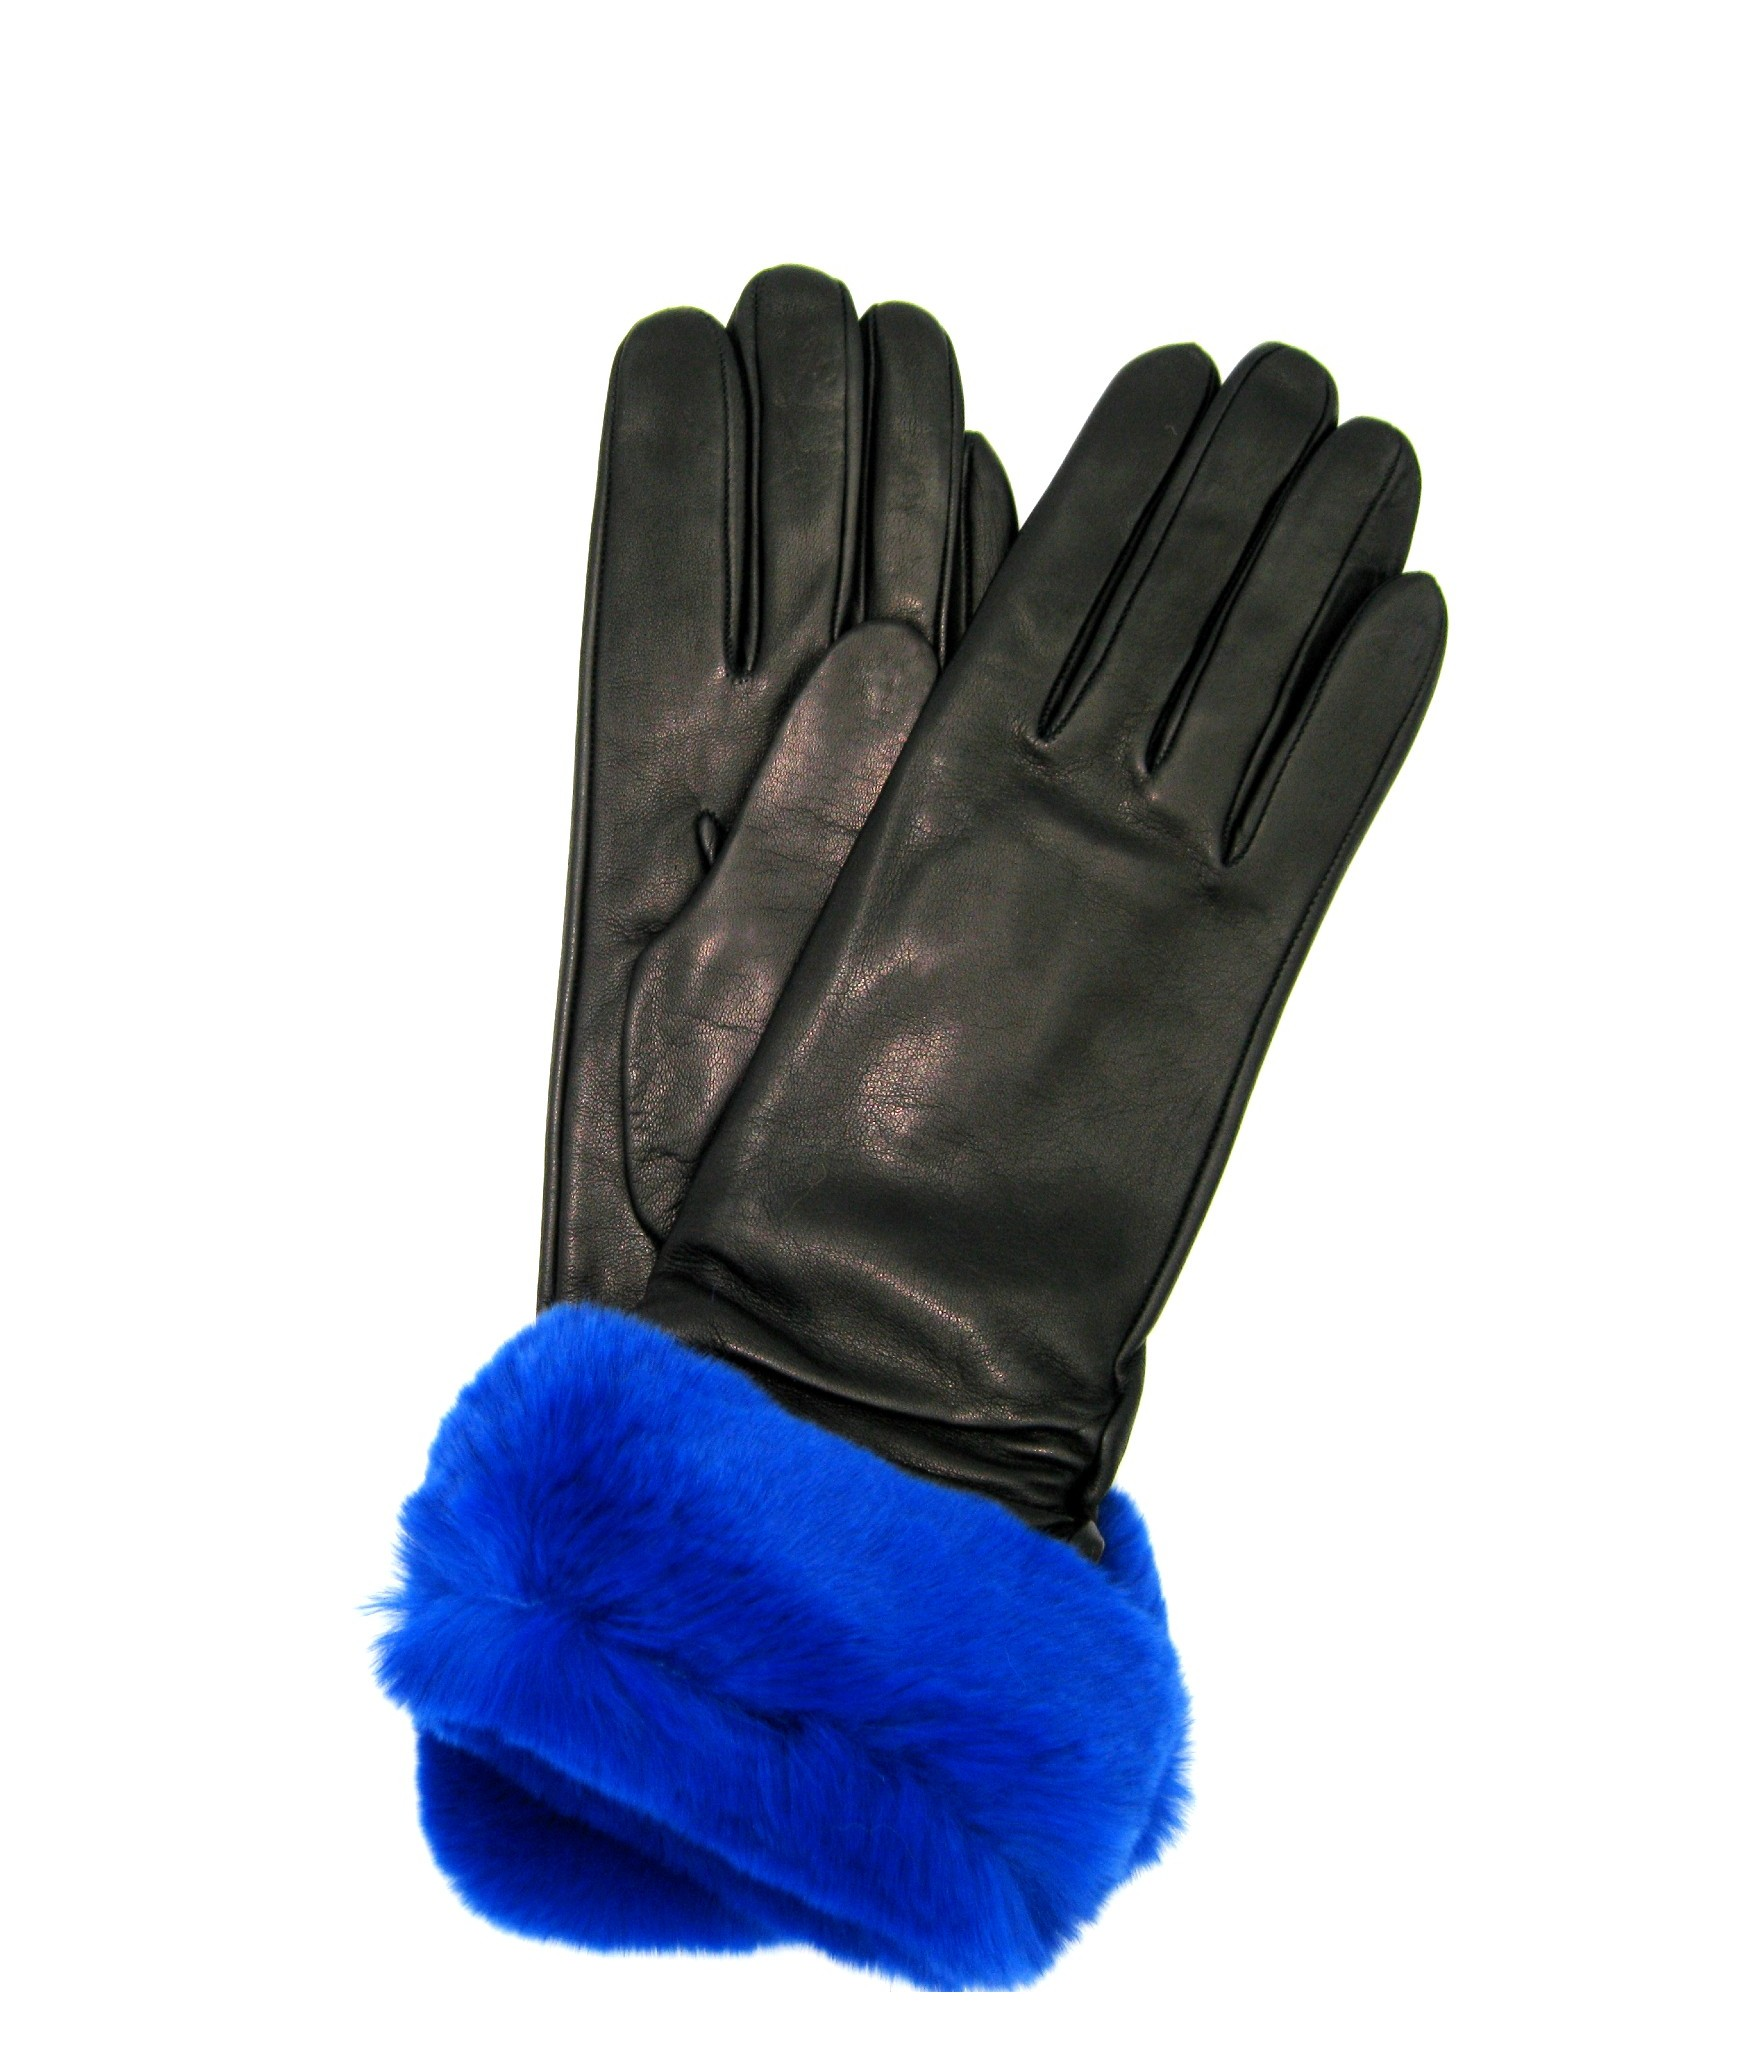 Nappa gloves cashmere lined 4bt with Rex fur Black/Royal